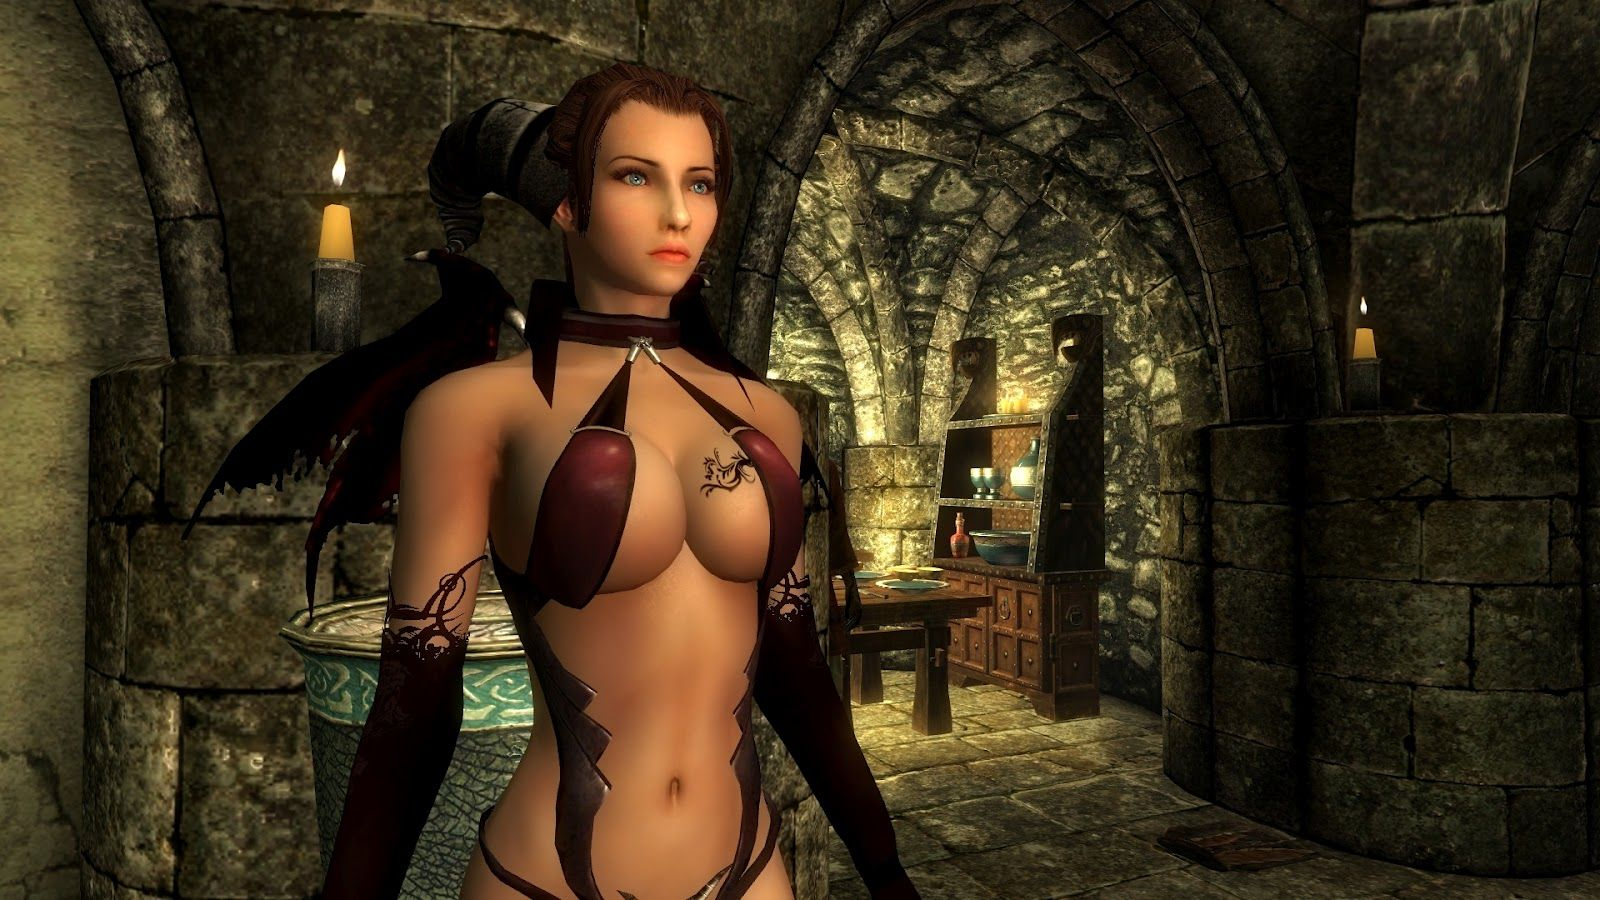 Hot girls in sexy armor